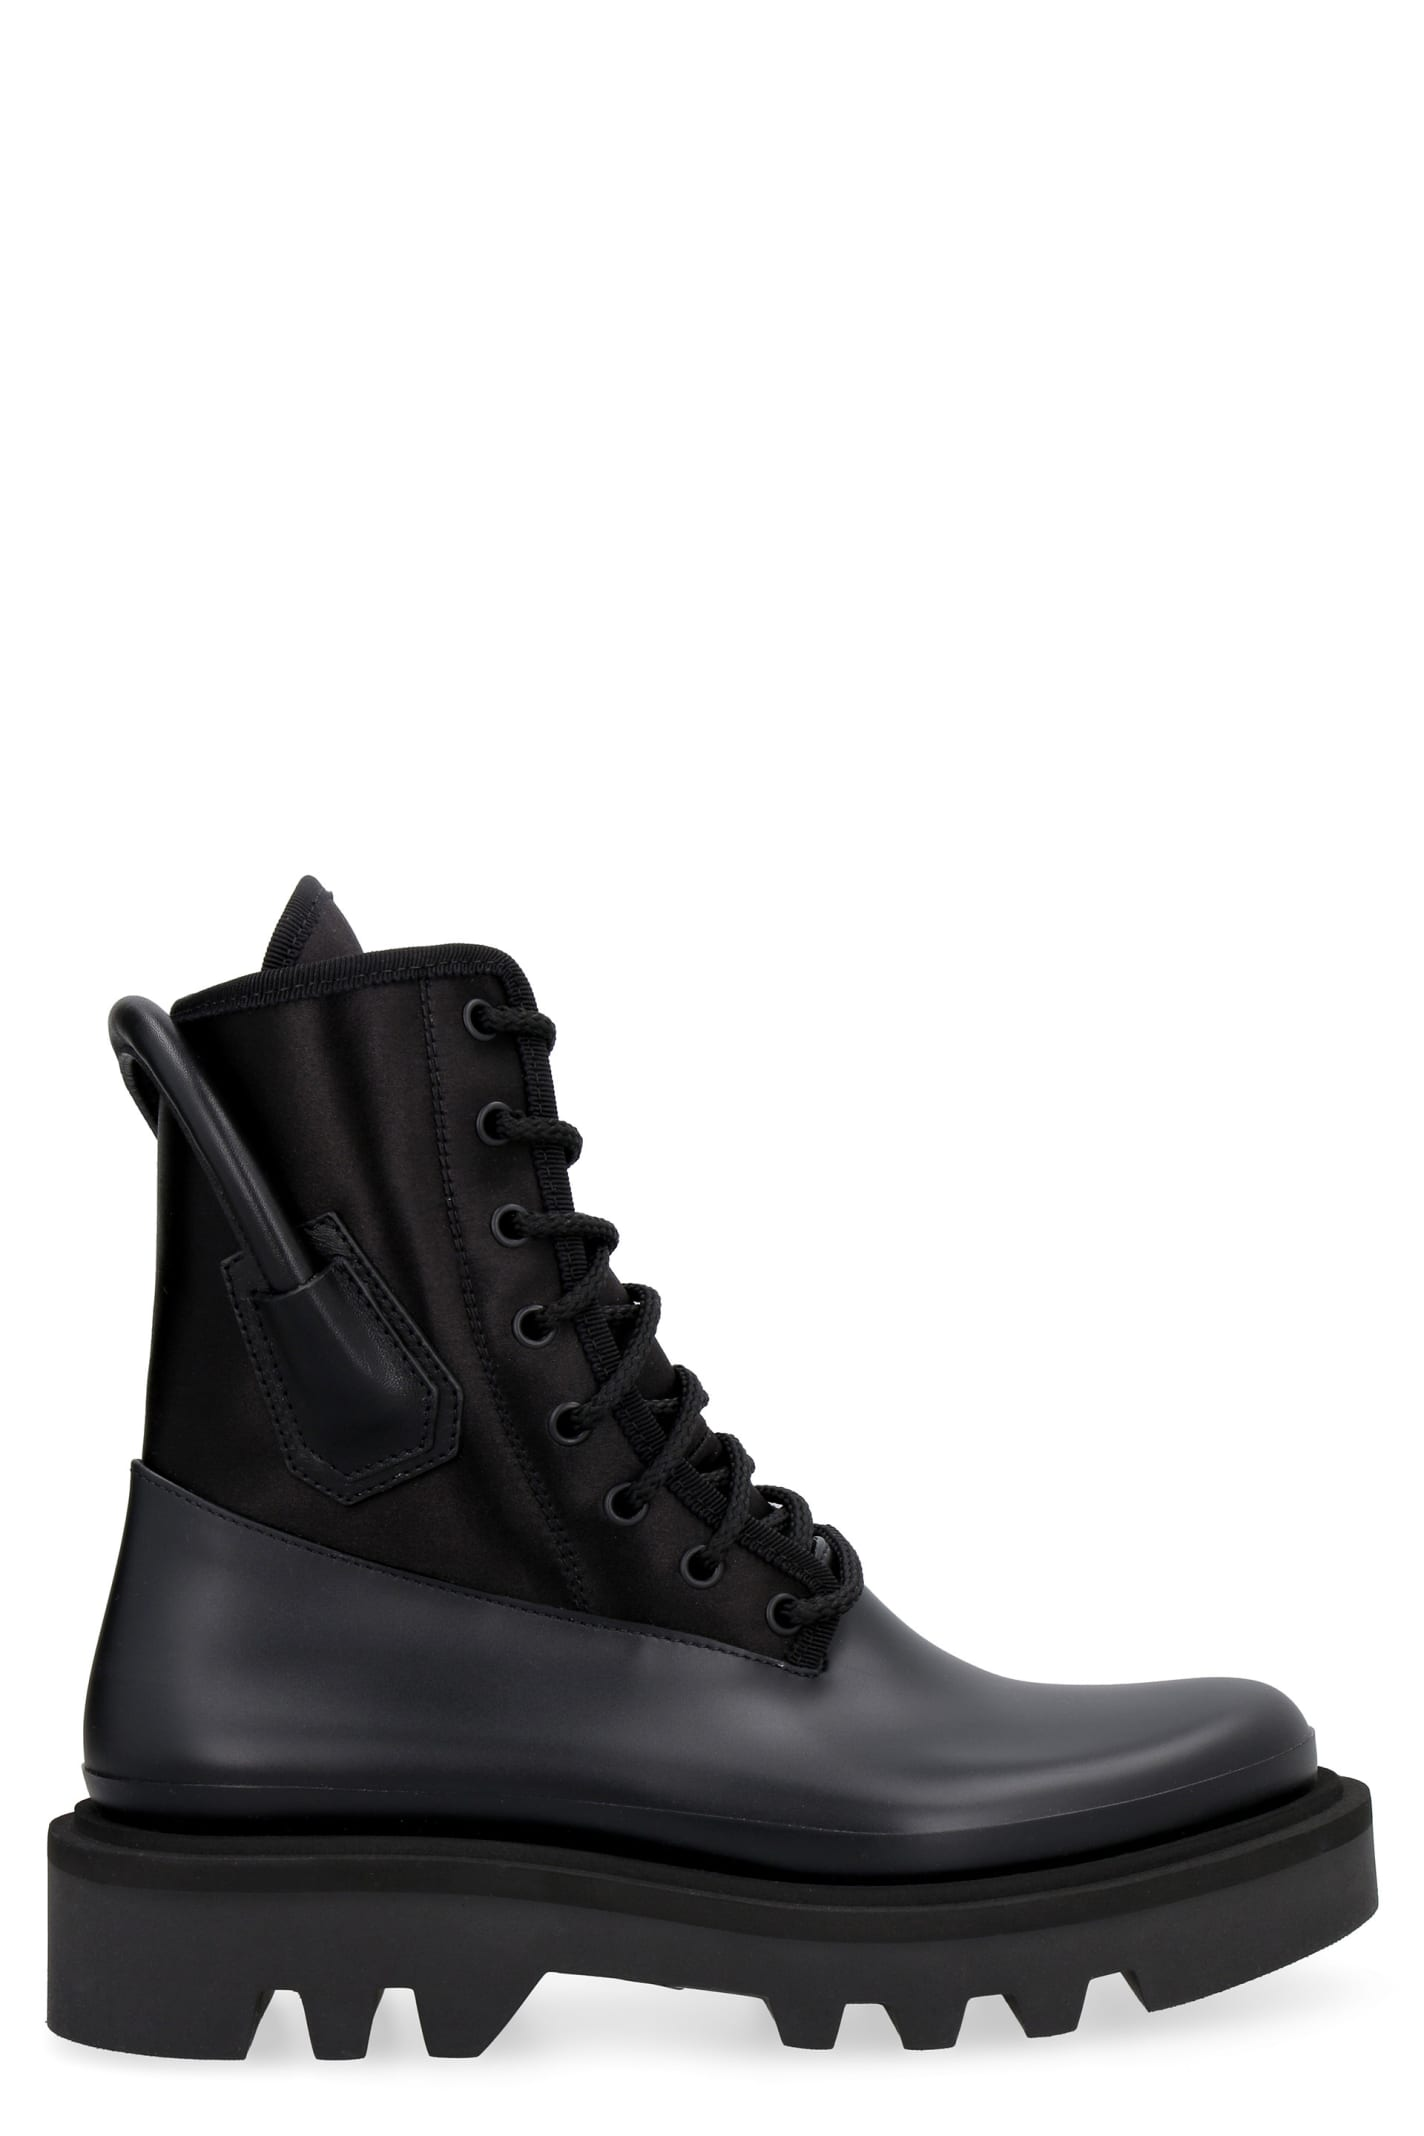 Givenchy Lug-sole Lace-up Boots